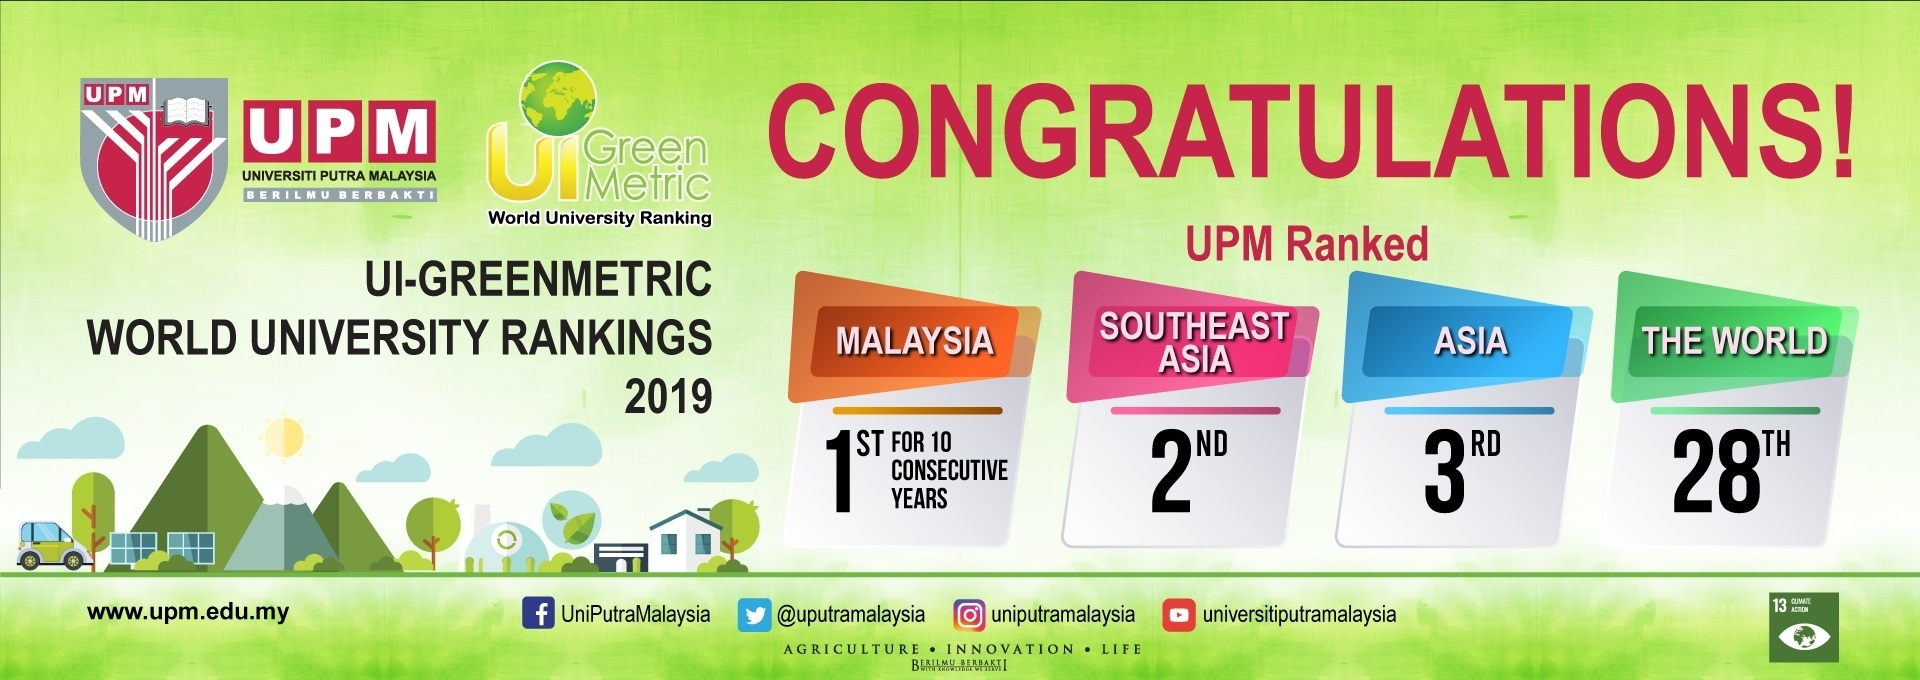 UI-Greenmetric World University Rankings 2019